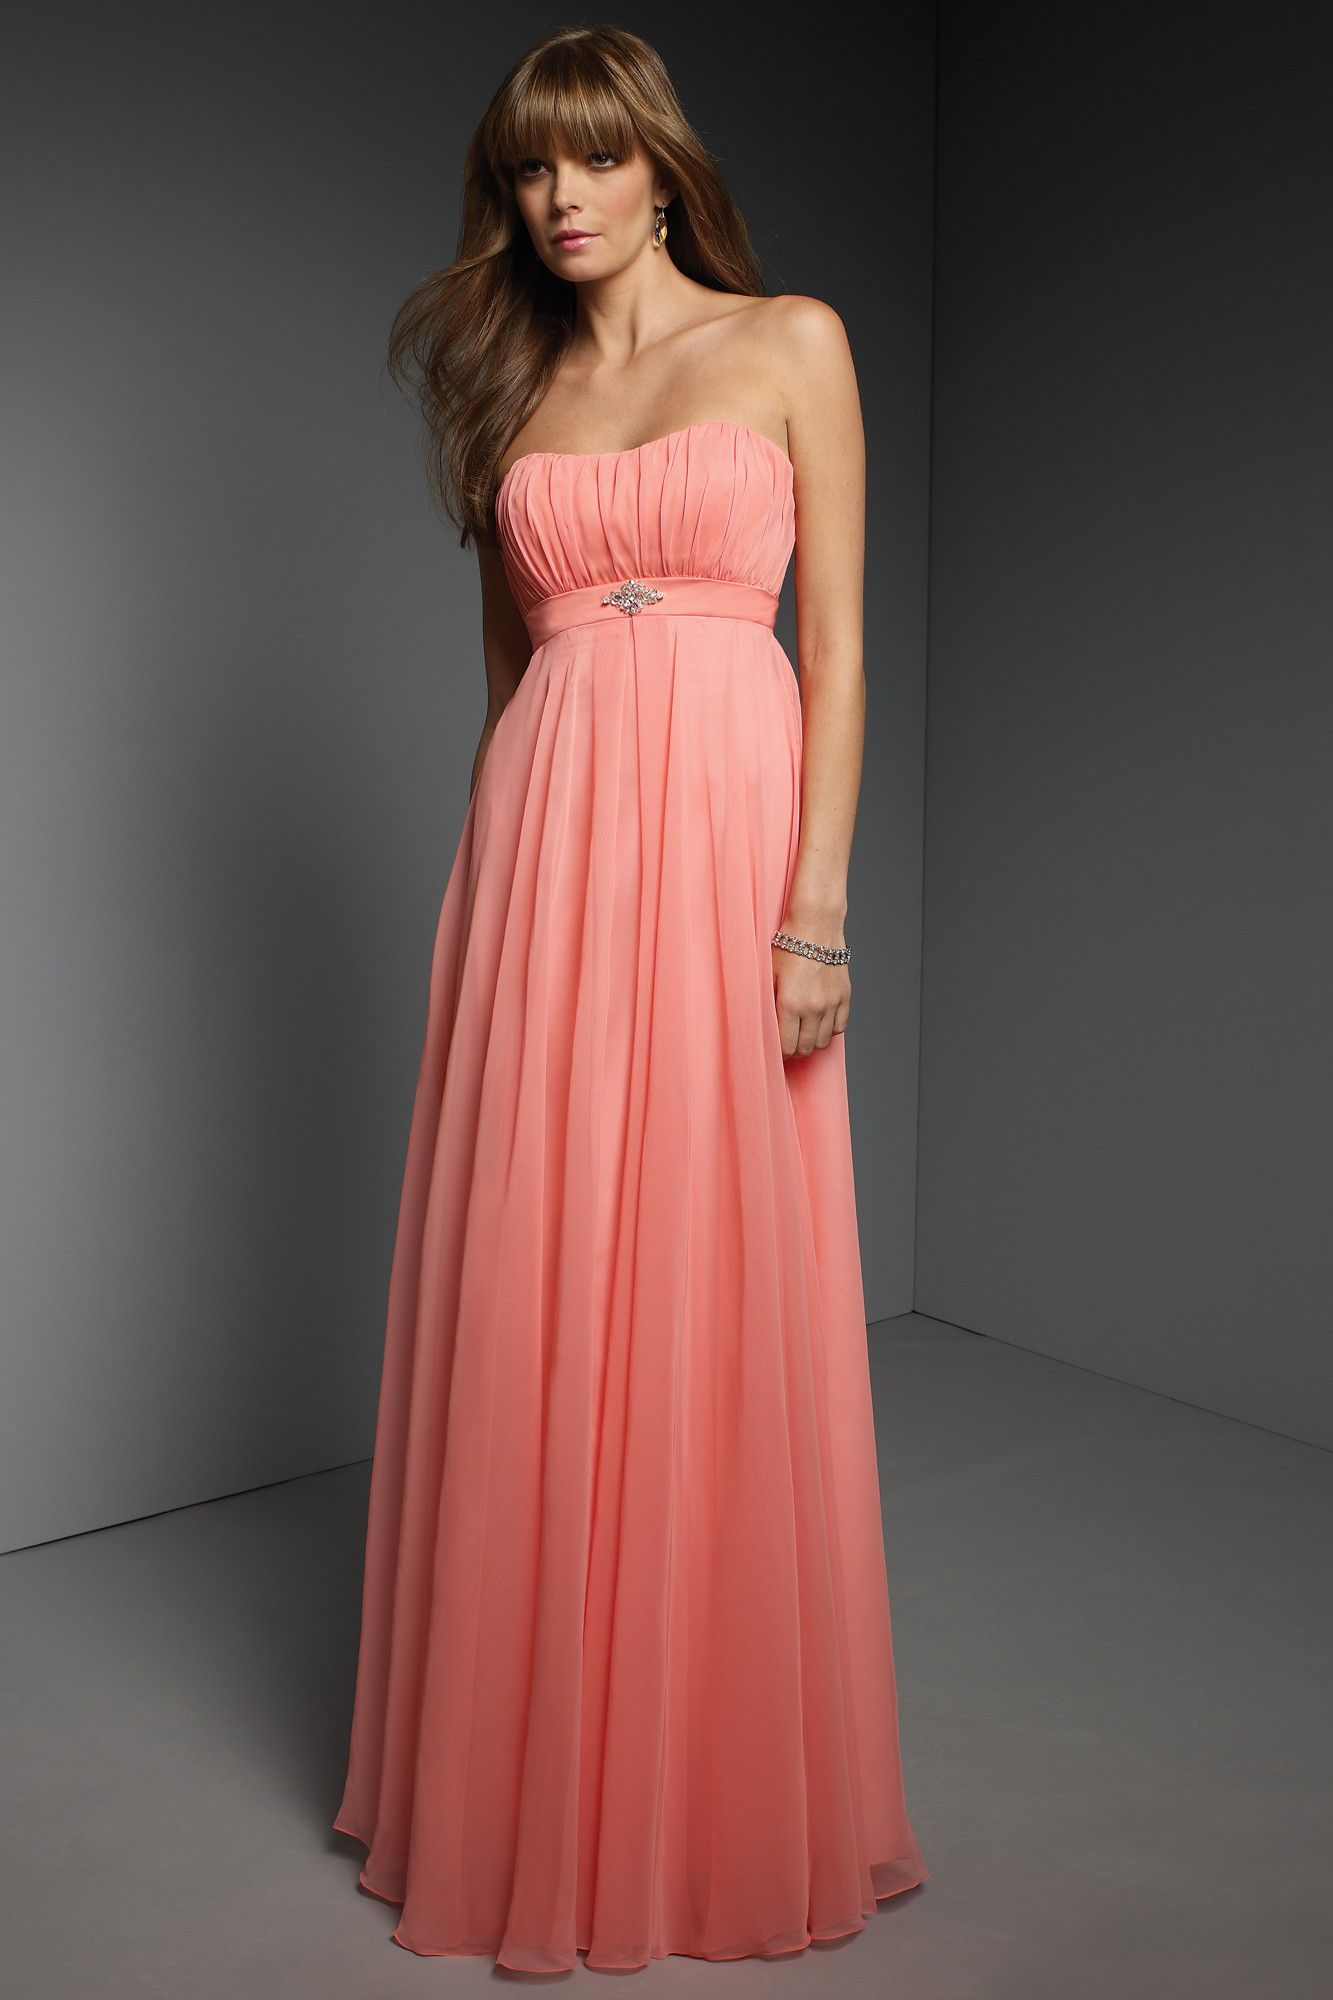 Bridesmaid Dress; Ombre coral wedding dress. | He put a ring on it ...